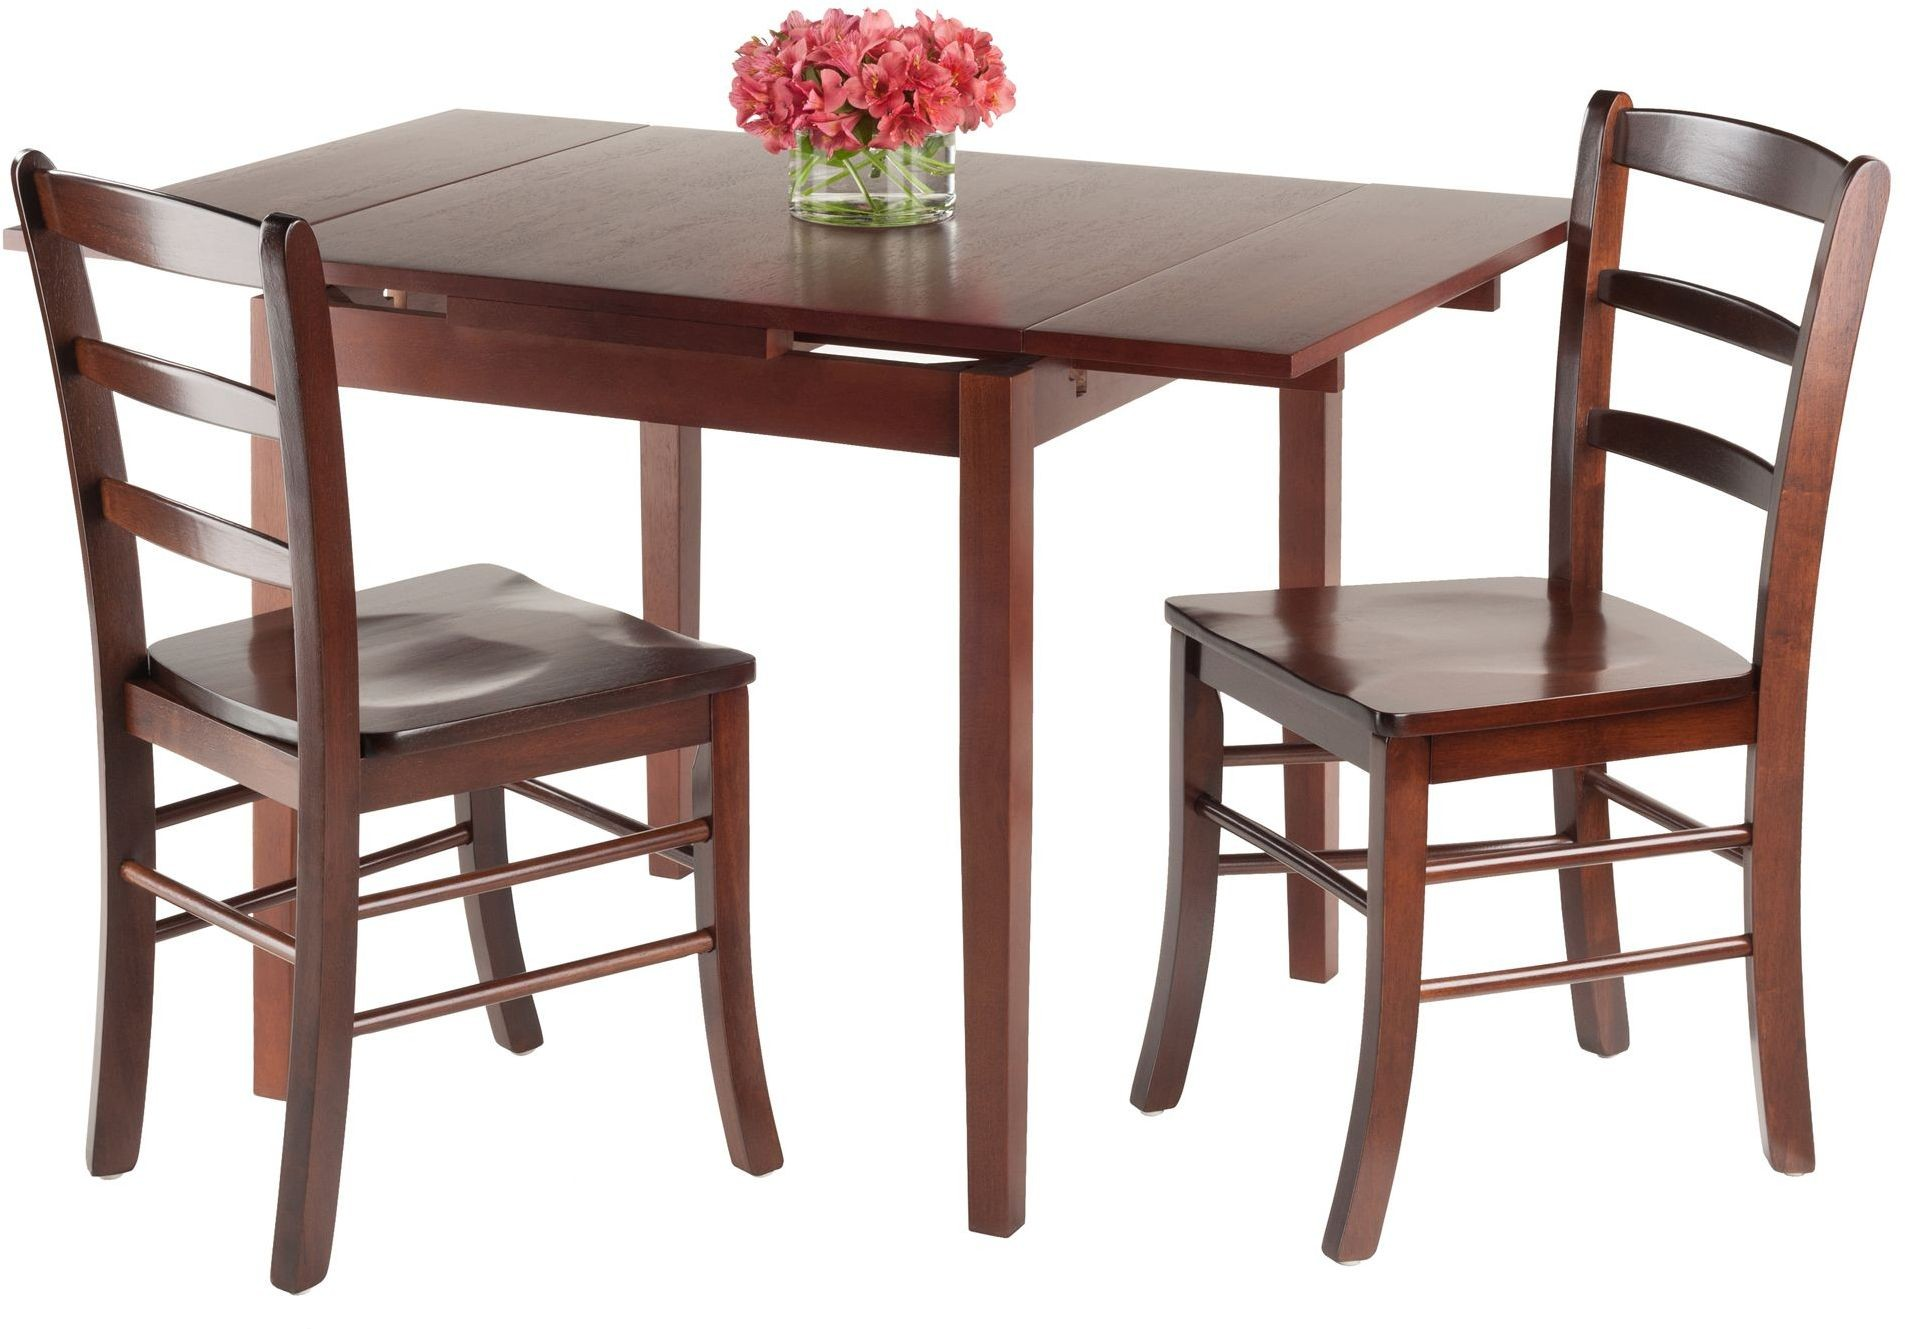 Pulman 3 Piece Extendable Dining Room Set 94352 Winsome